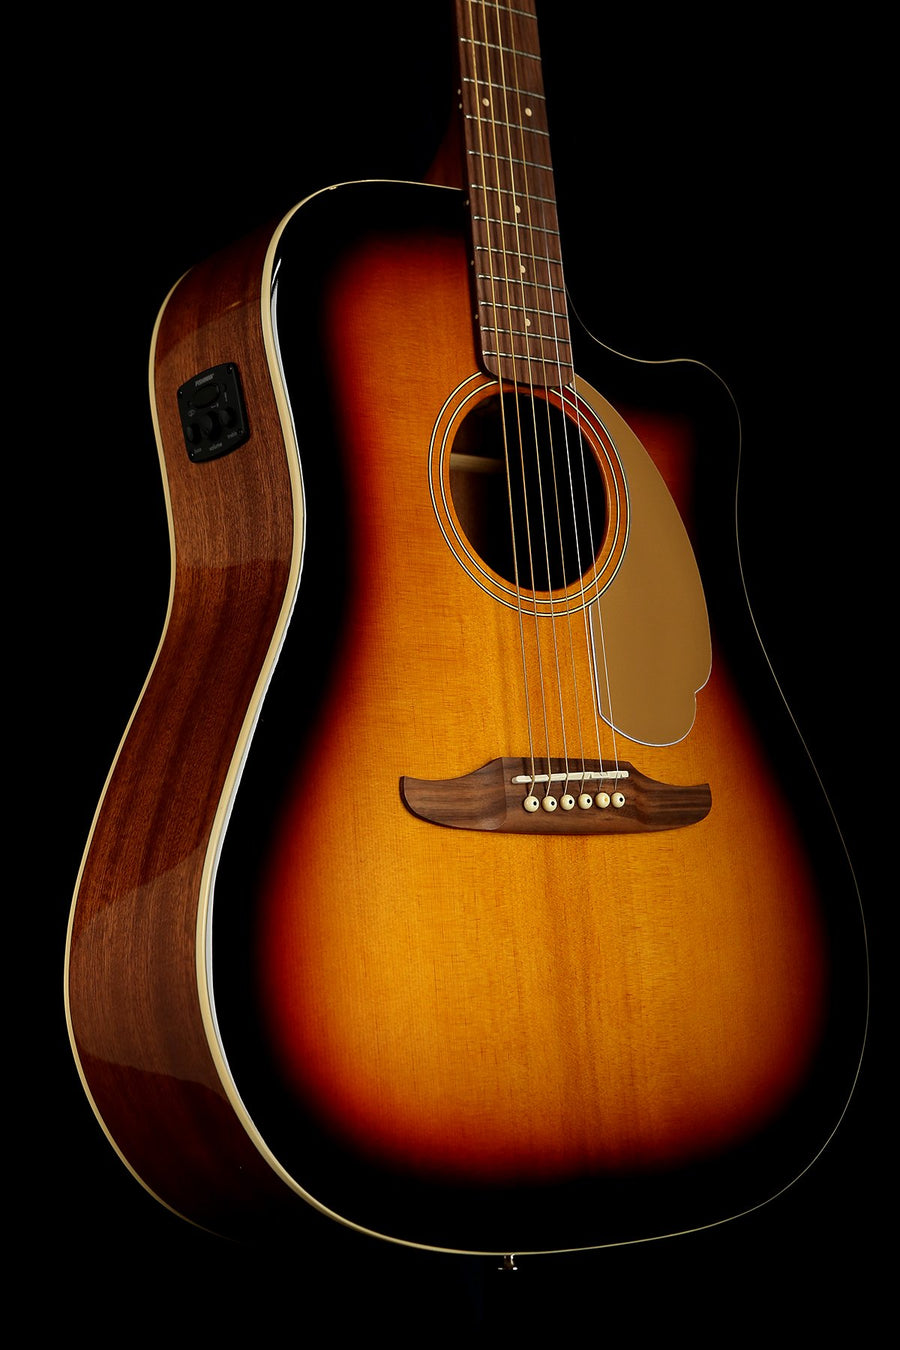 Fender California Player Redondo Sunburst Dreadnought Acoustic Electric Guitar